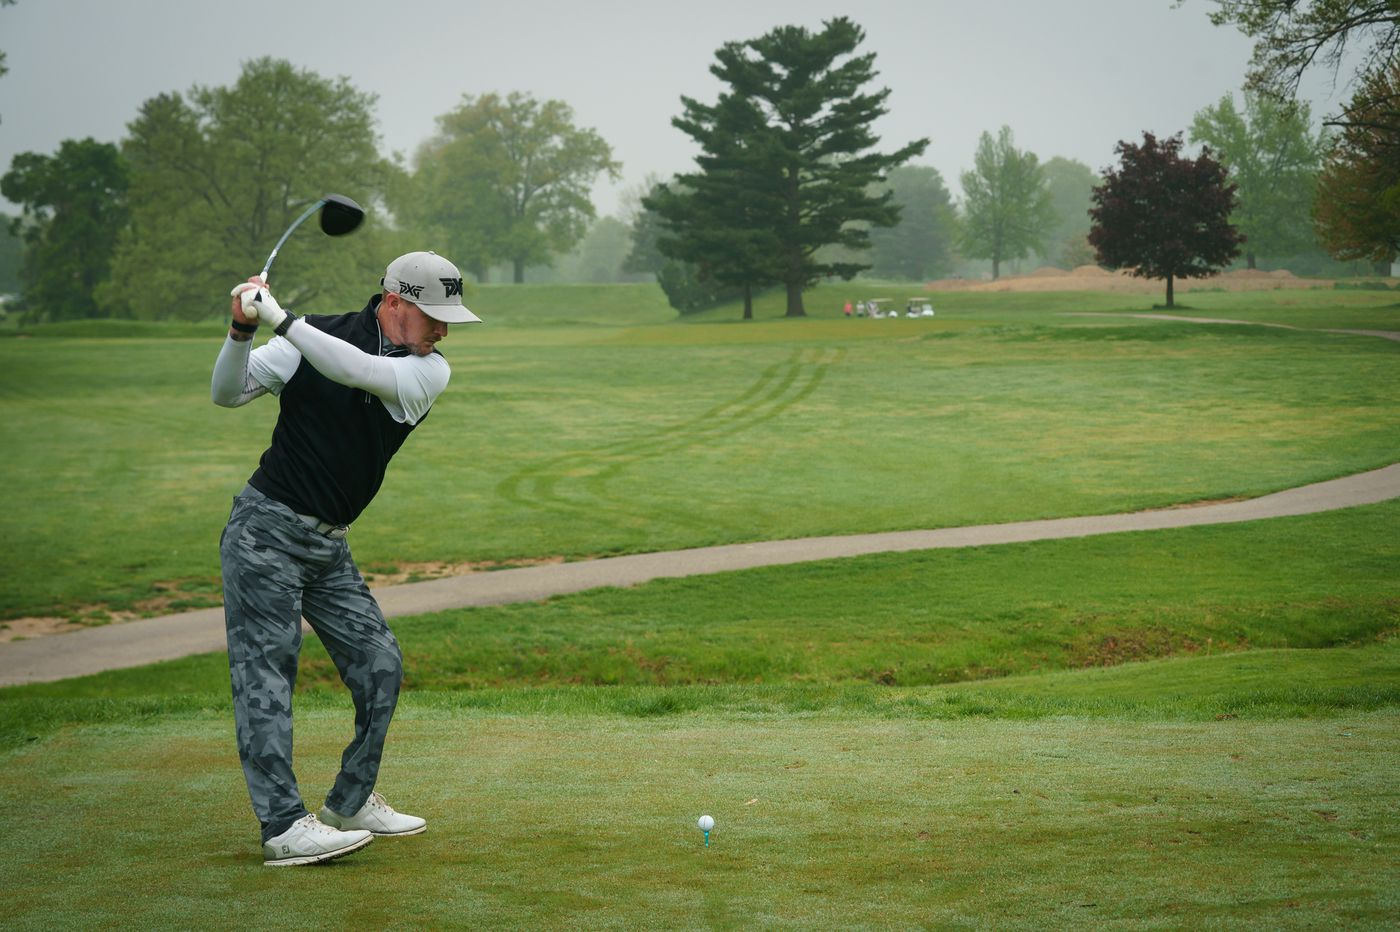 The long game: A veteran from Tacony who lost his legs in Afghanistan finds himself in golf